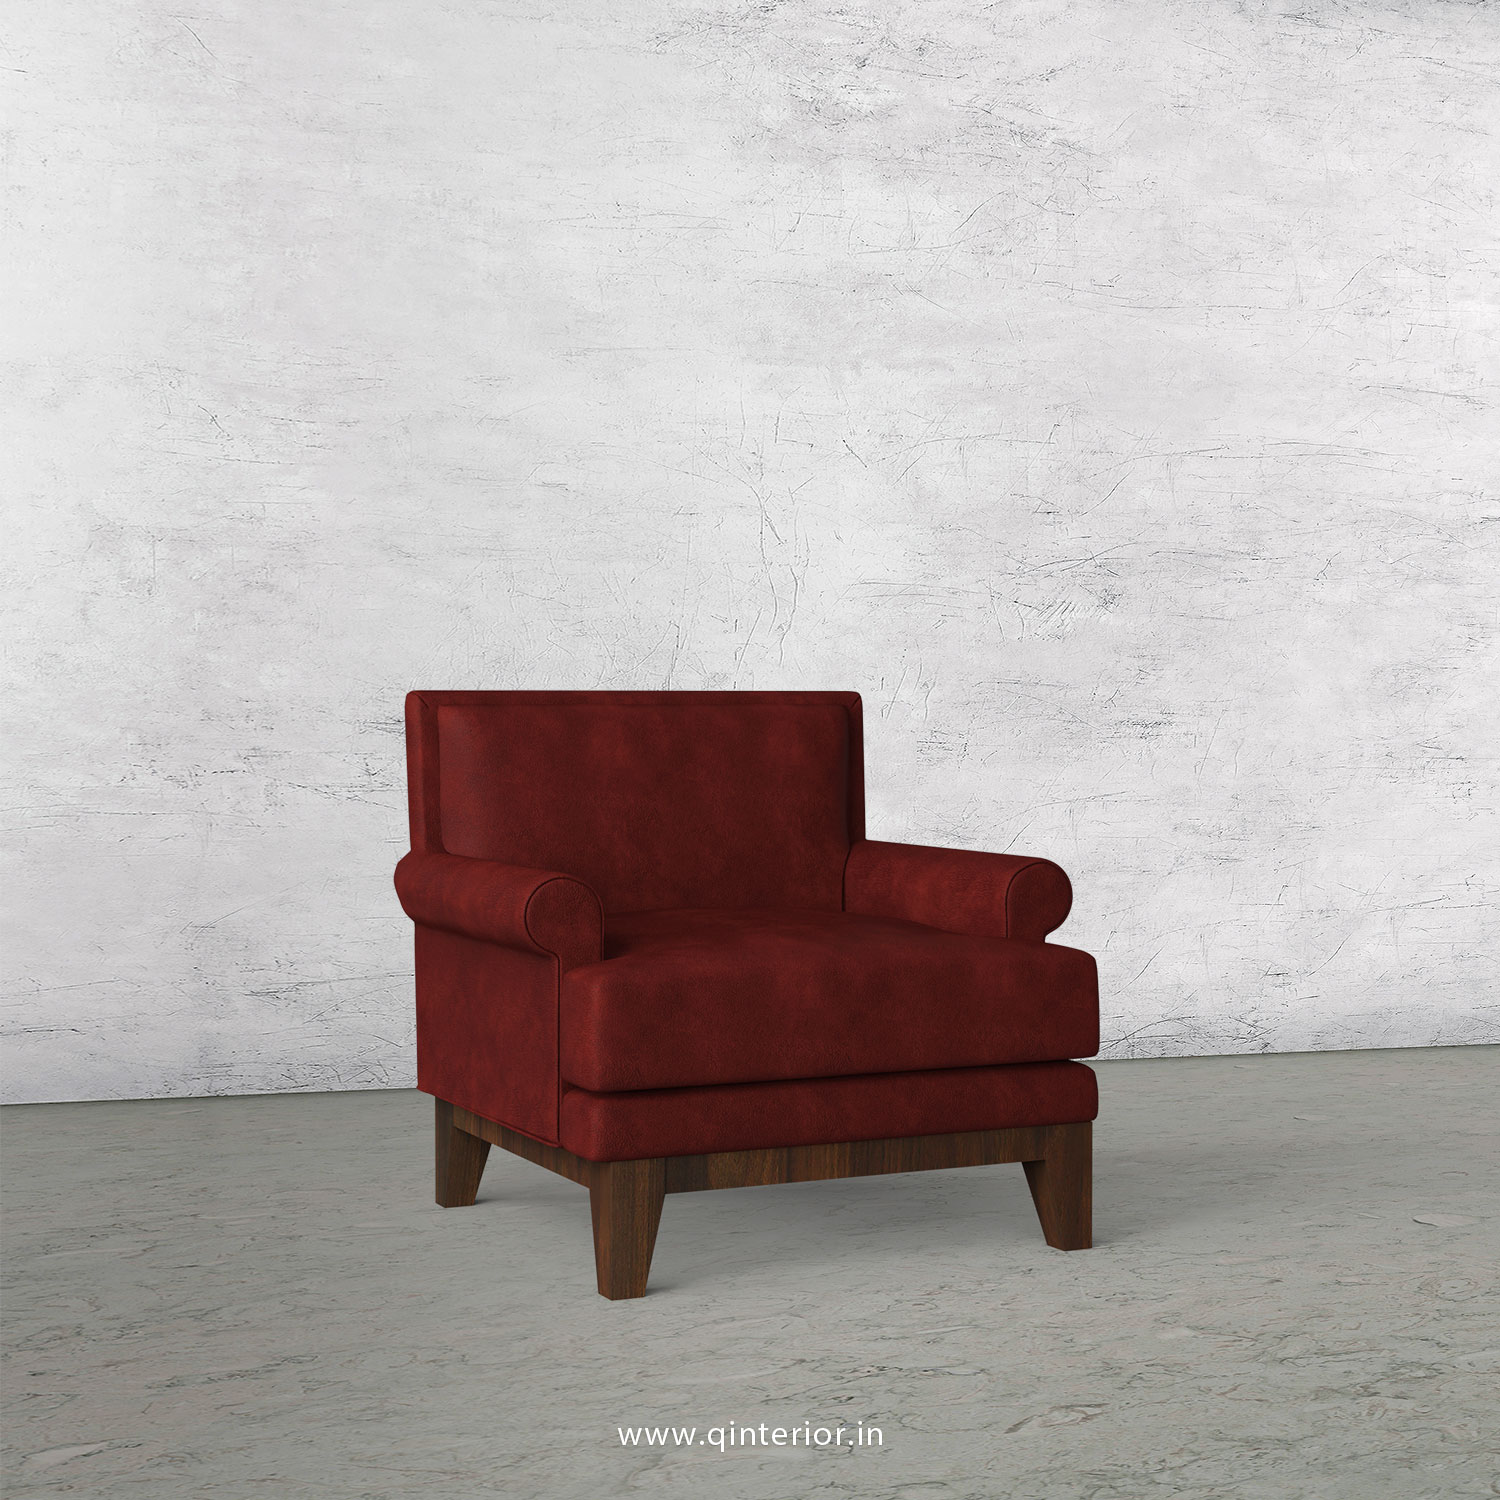 Aviana 1 Seater Sofa in Fab Leather Fabric - SFA001 FL17